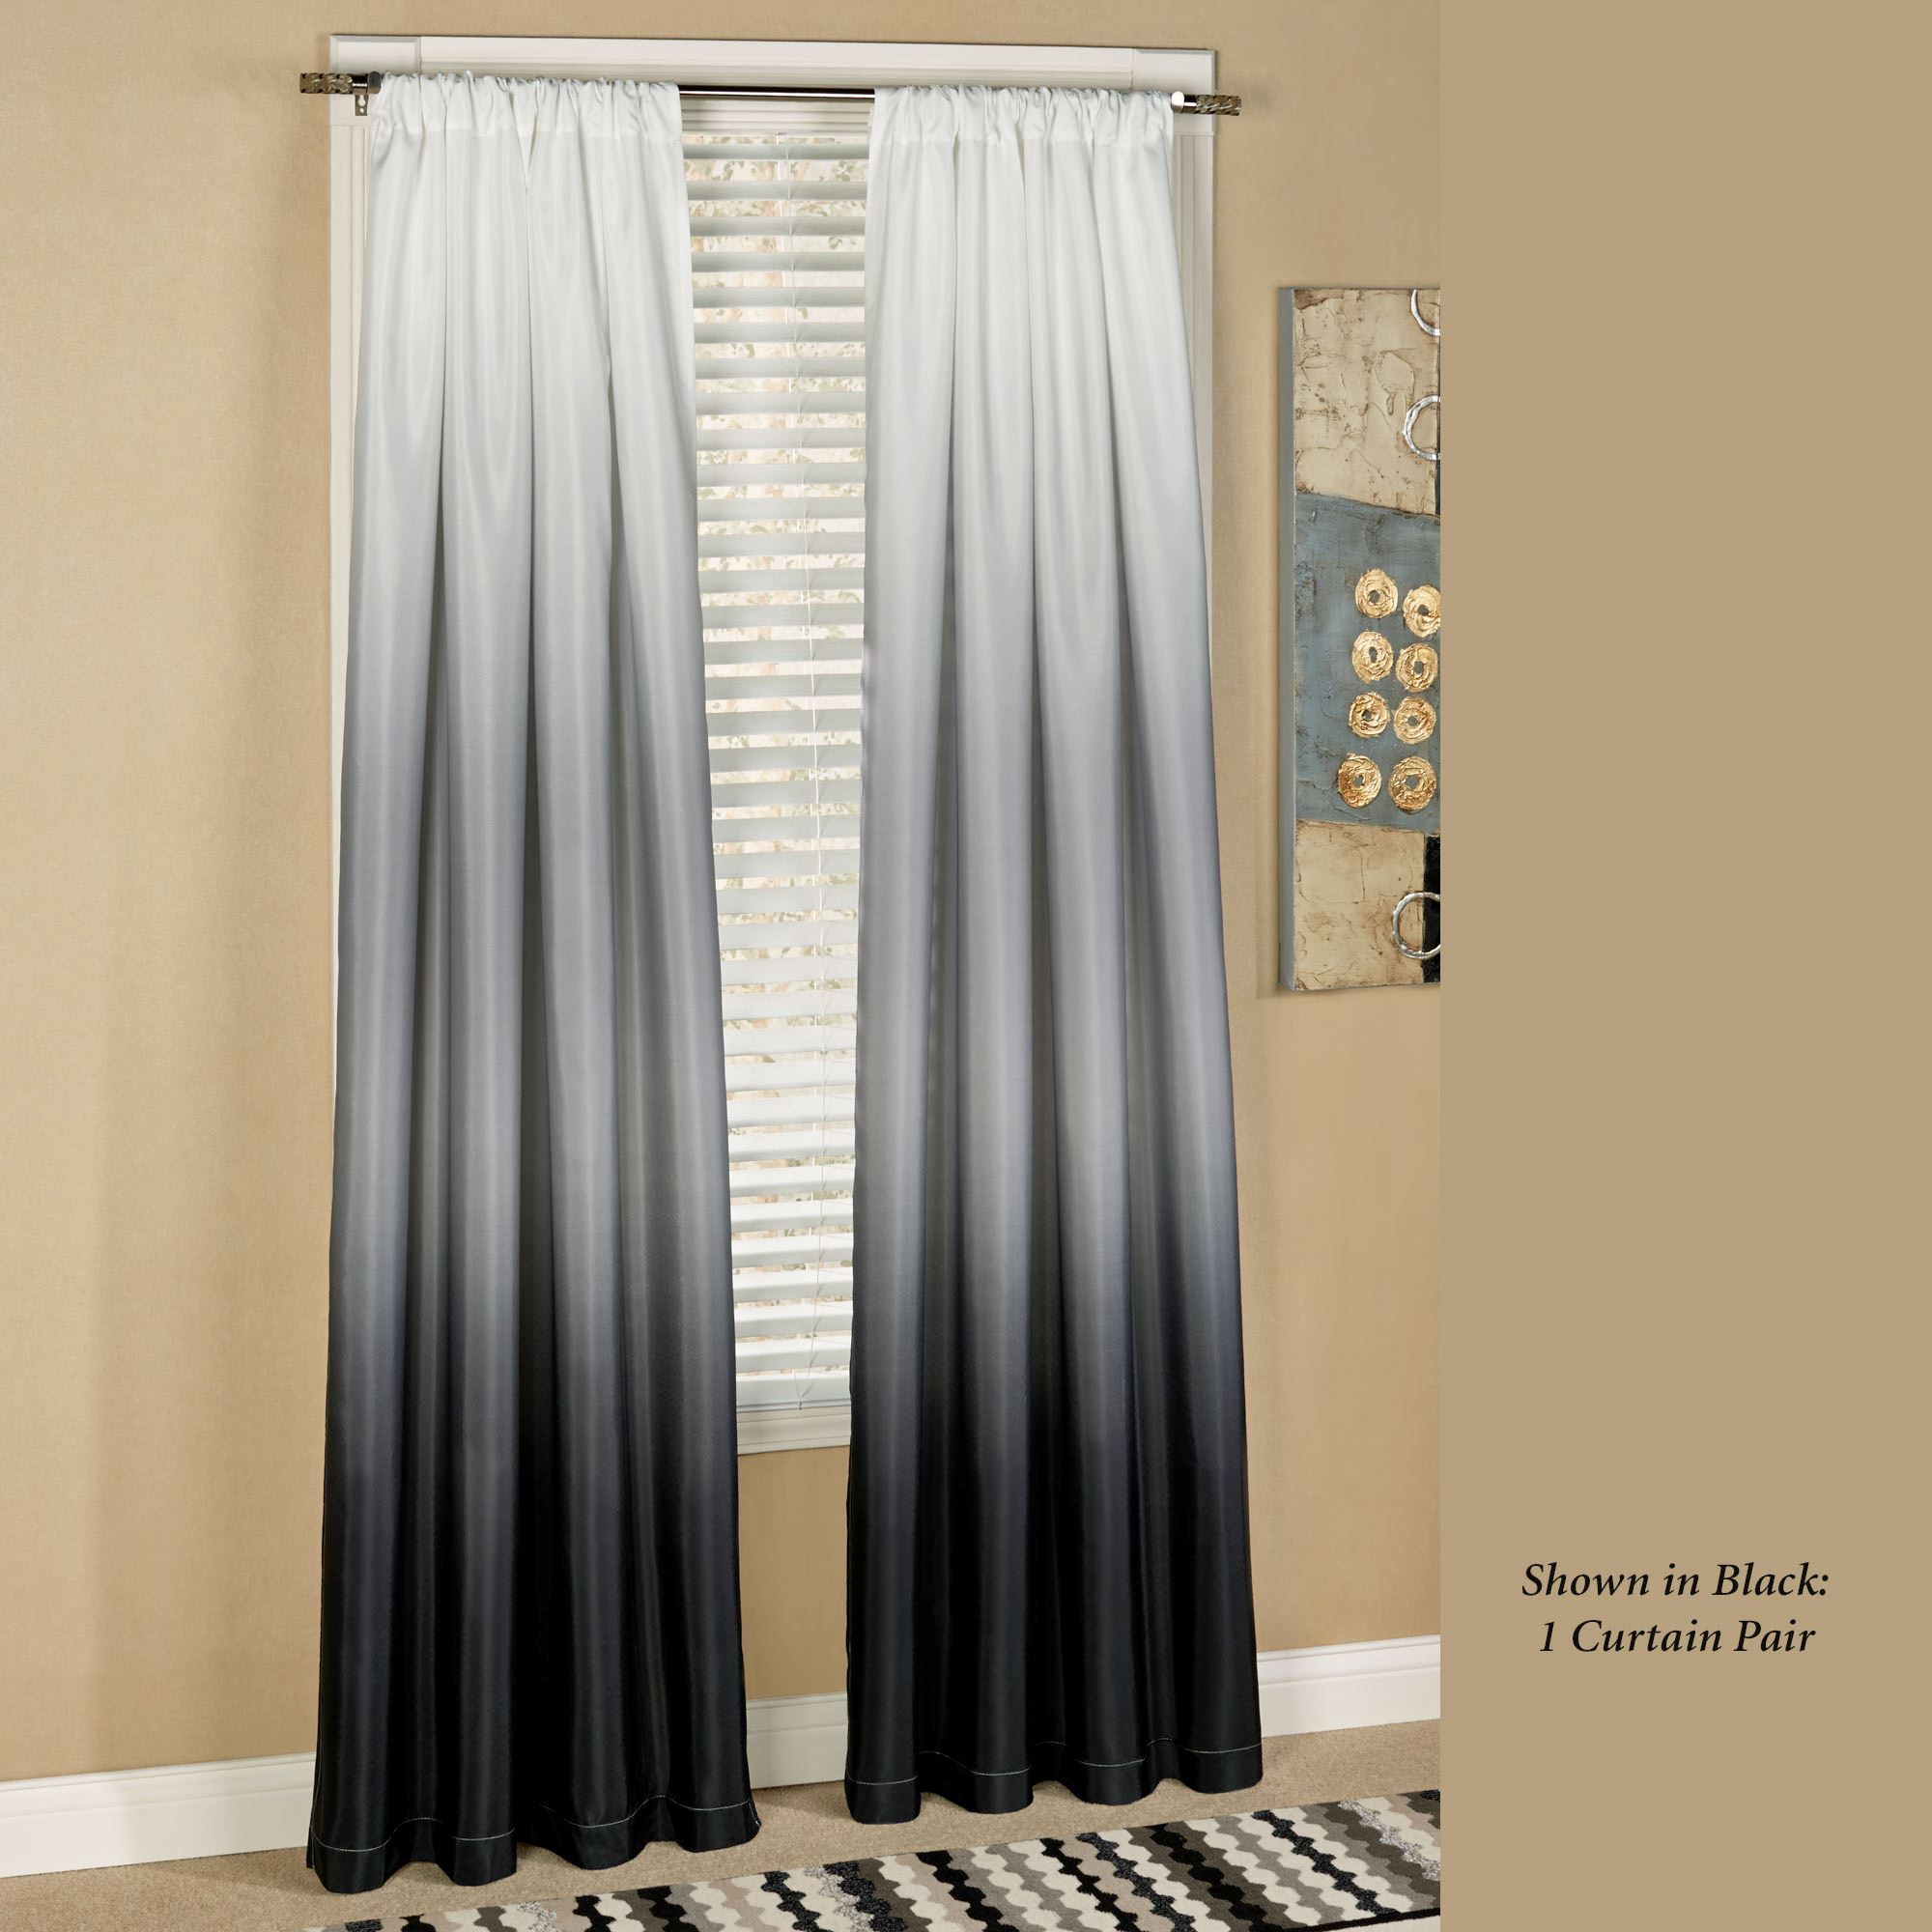 Ombre Curtains Grey | Flisol Home Intended For Ombre Faux Linen Semi Sheer Curtains (View 18 of 20)